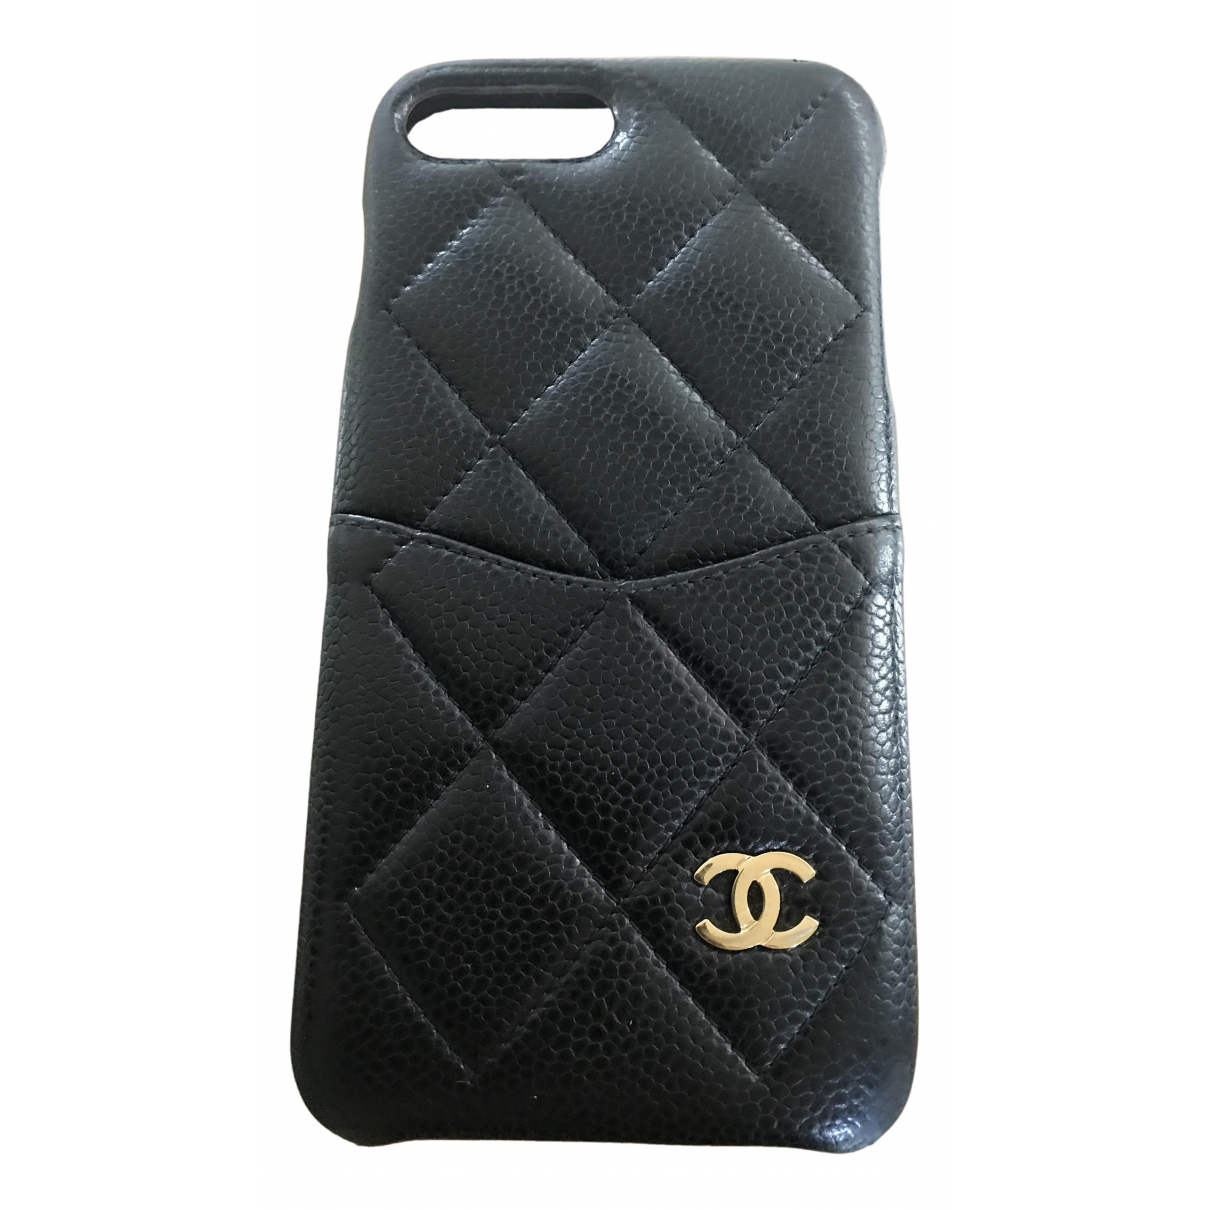 Funda iphone de Cuero Chanel